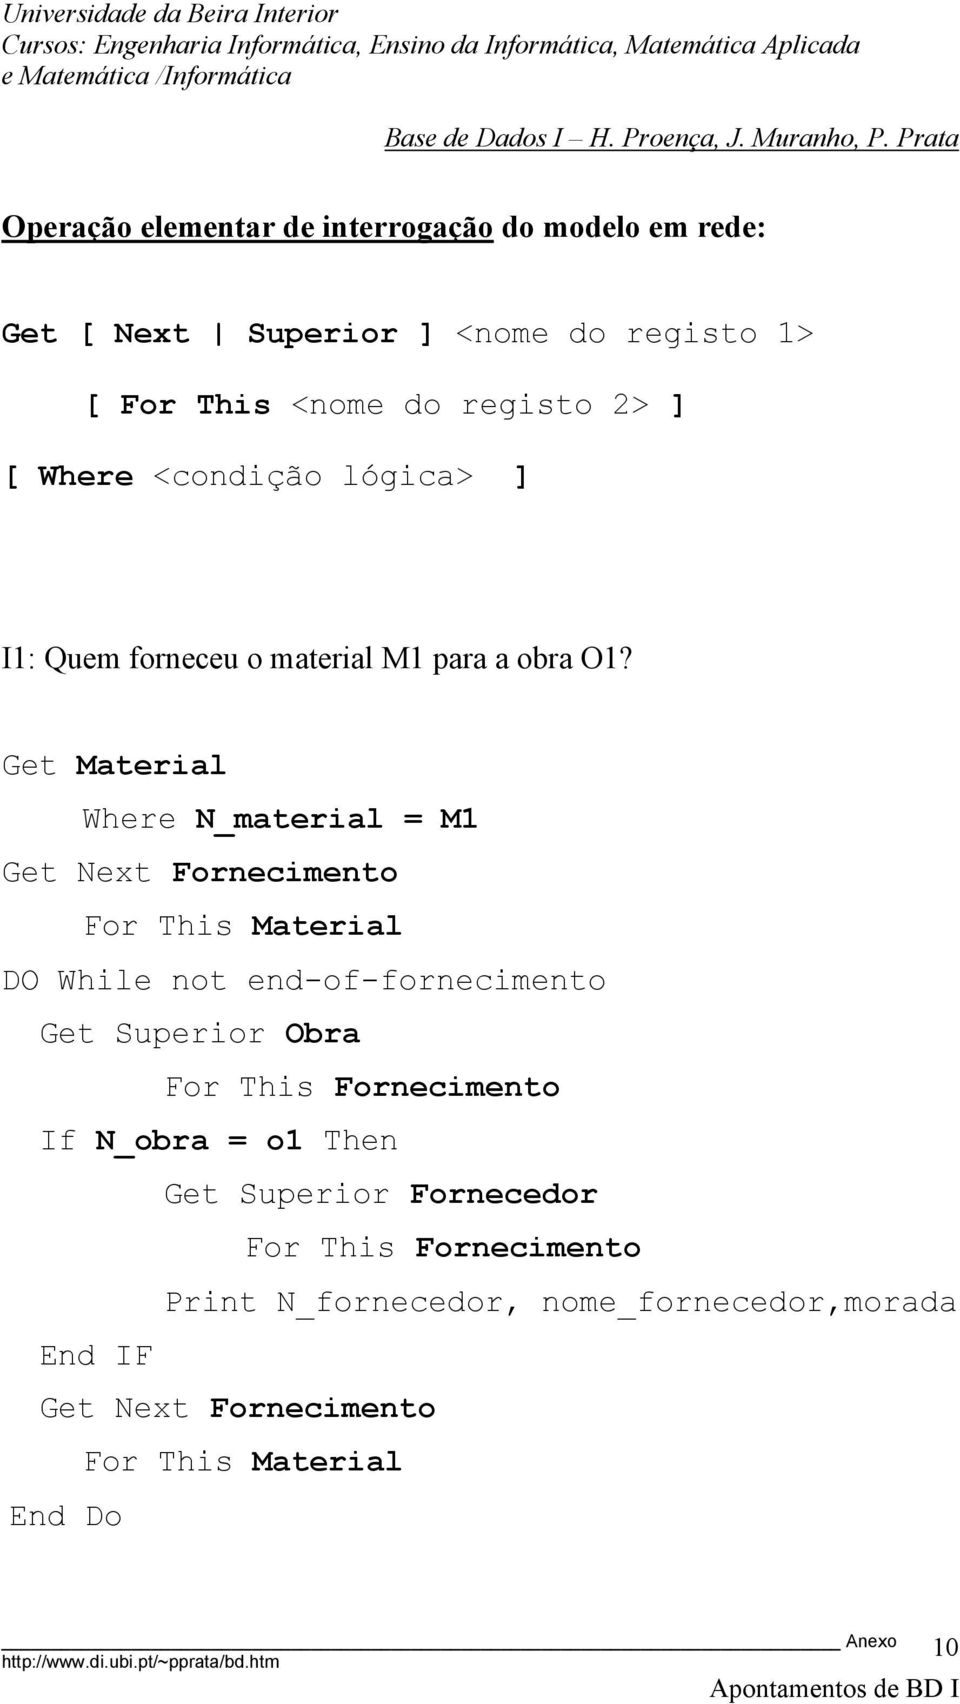 Get Material Where N_material = M1 Get Next Fornecimento For This Material DO While not end-of-fornecimento Get Superior Obra